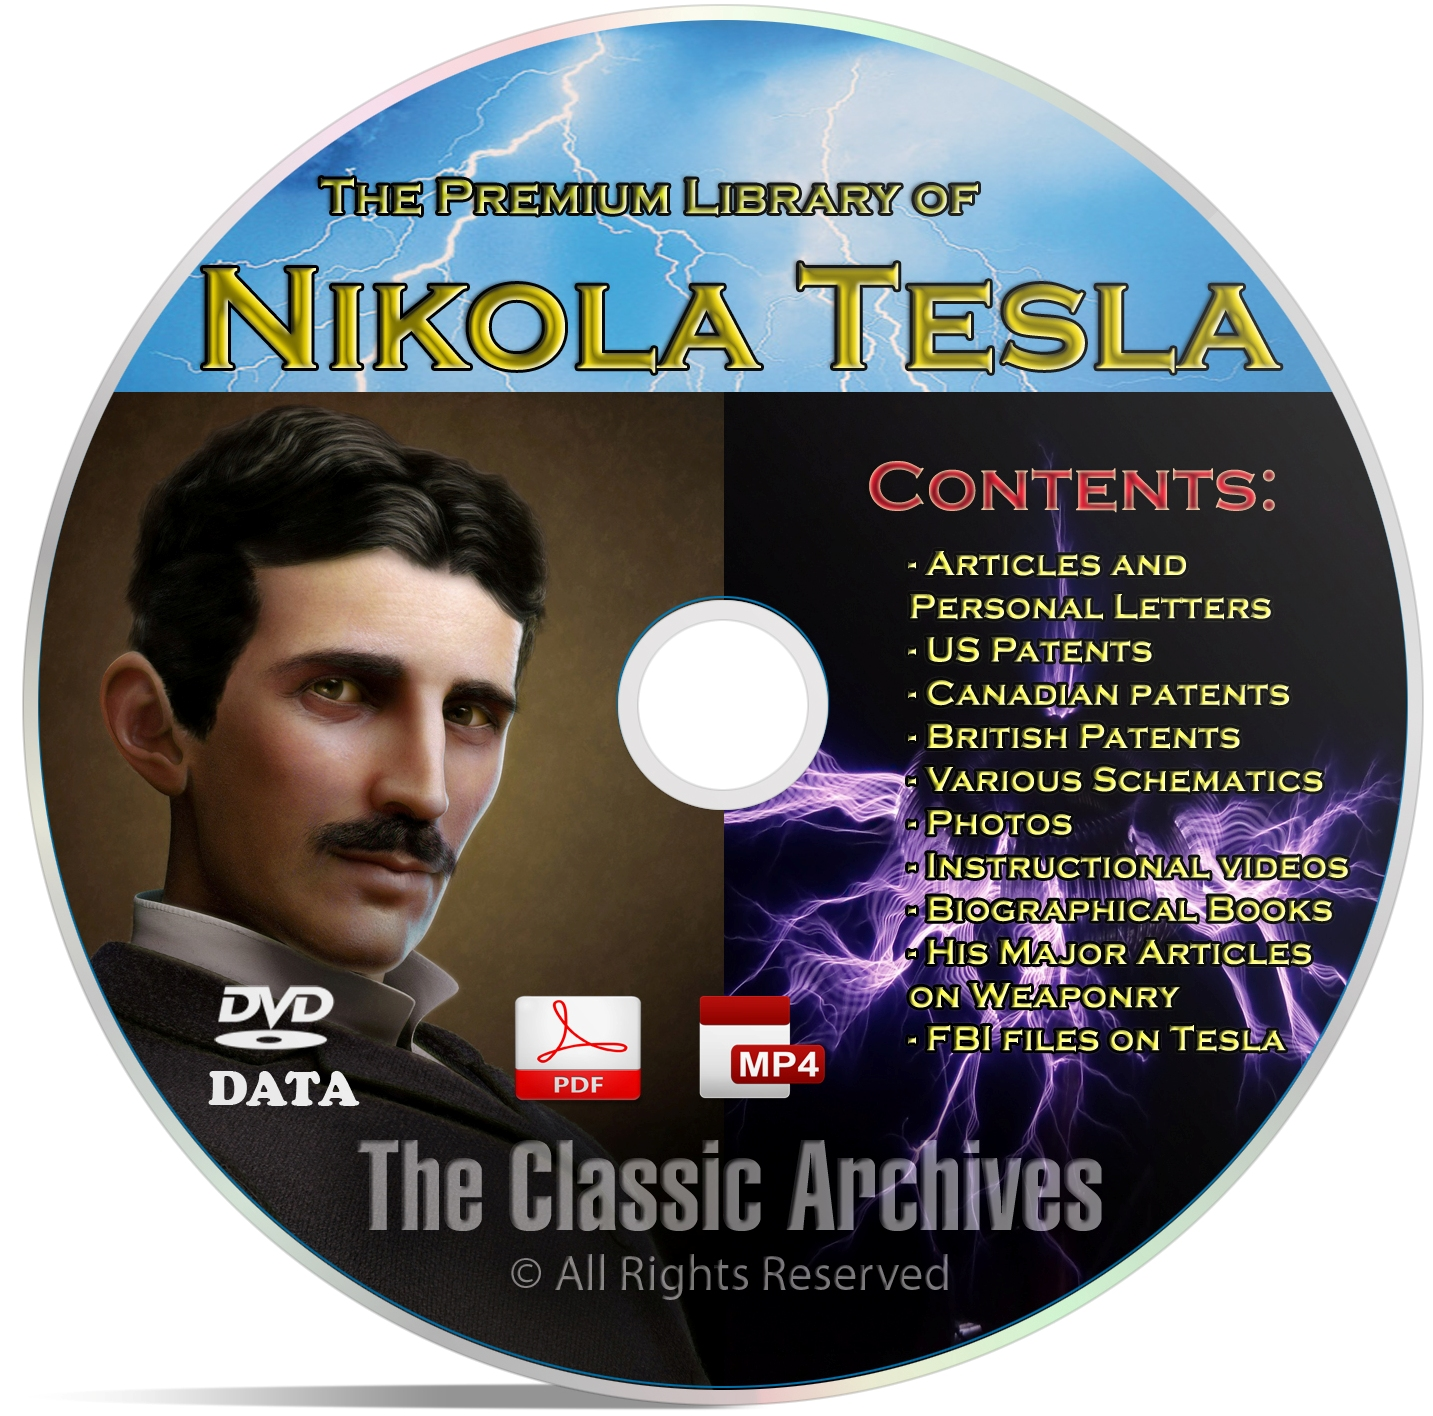 Nikola Tesla 325+ Book Library, Patents, Articles, Alternative Energy DVD